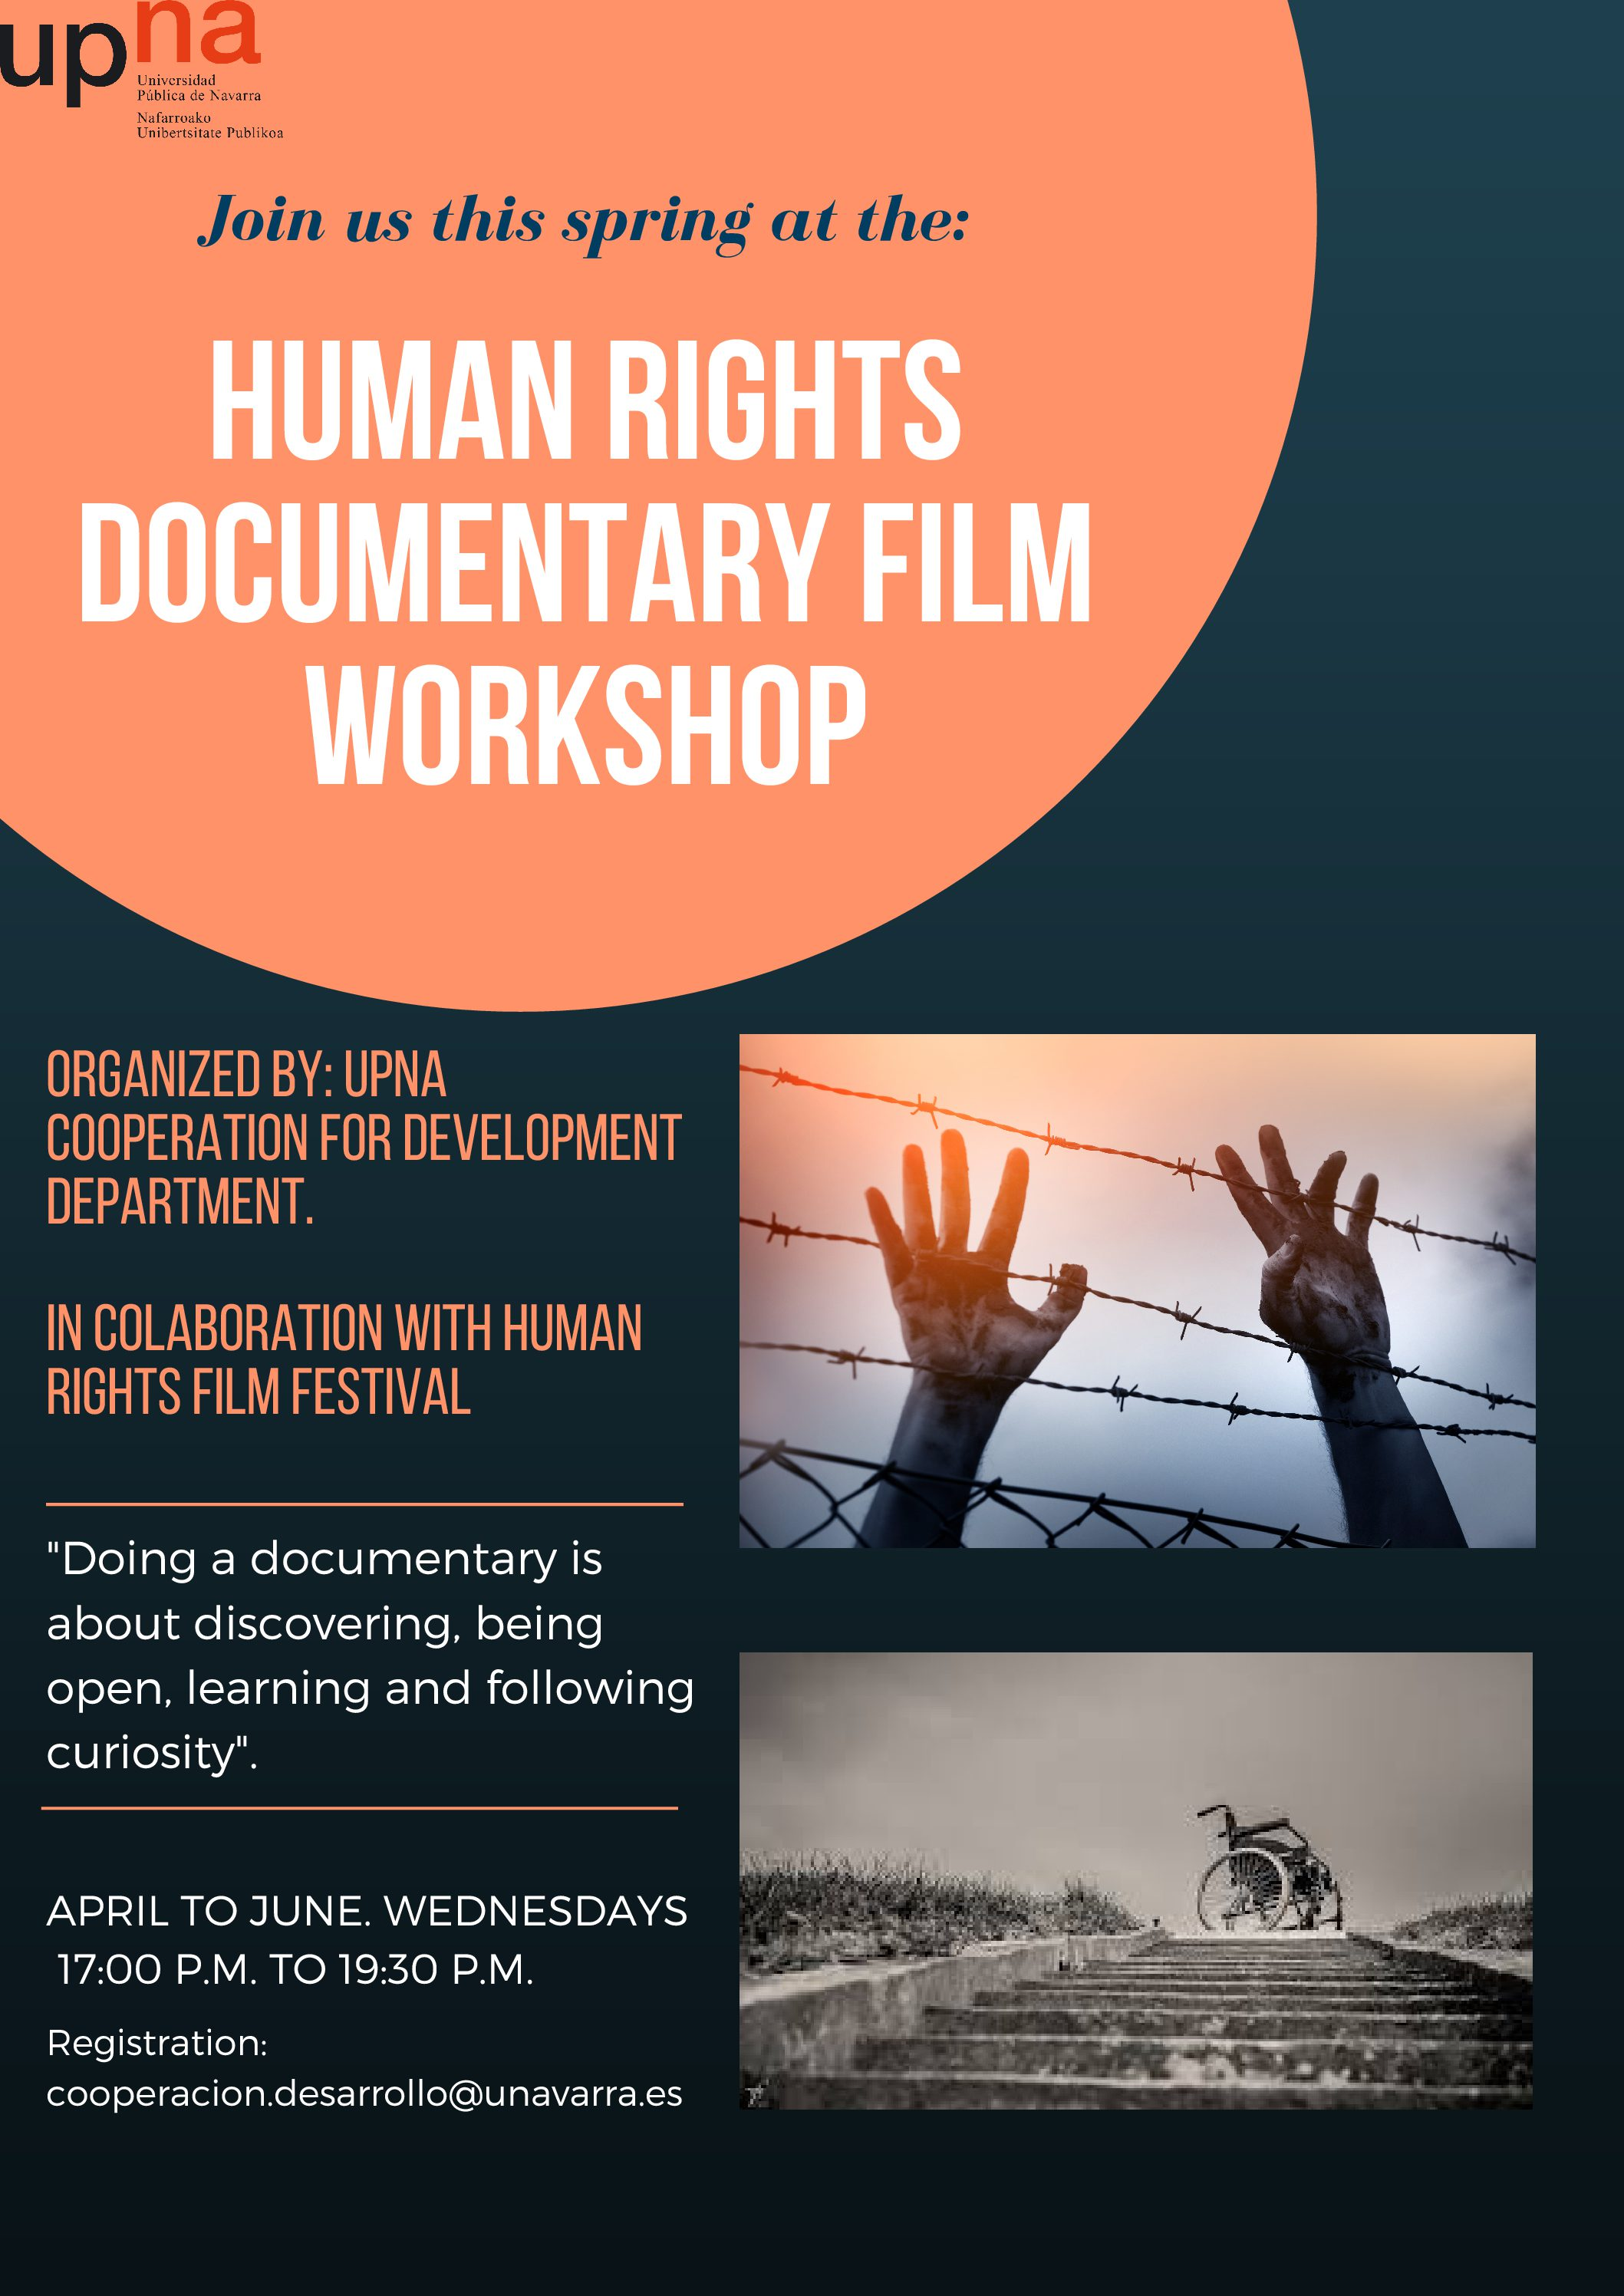 Taller de documentales sobre Derechos Humanos / Human Rights documentary film workshop (abierta inscripción)